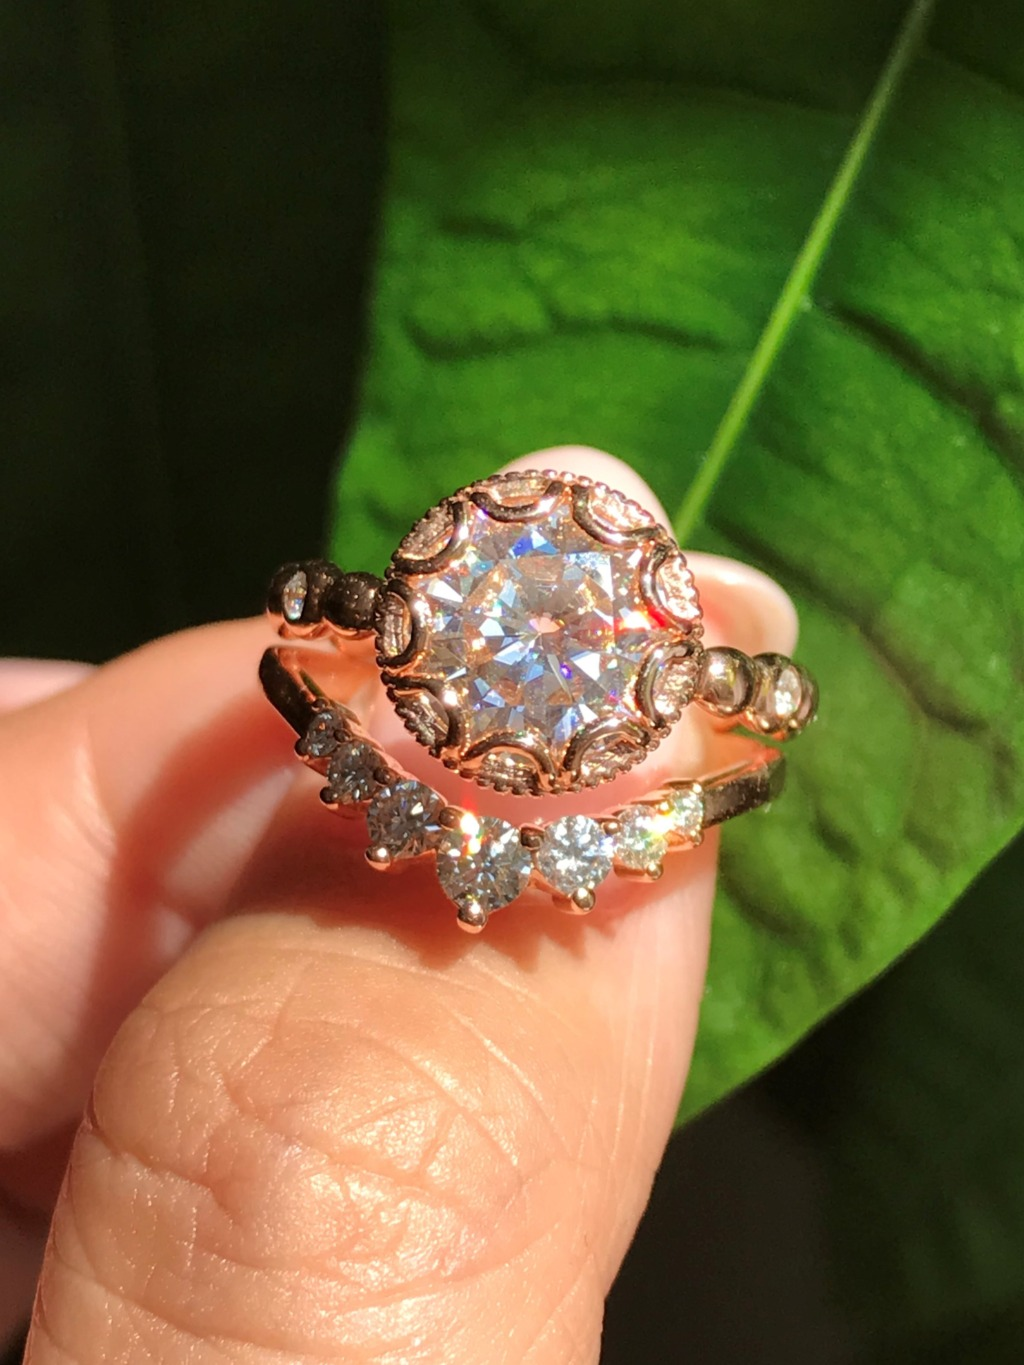 Brilliant and beautiful, she's our Floral Solitaire Round Moissanite in Pebble Diamond Band paired with a 7 Stone Diamond Wedding Ring